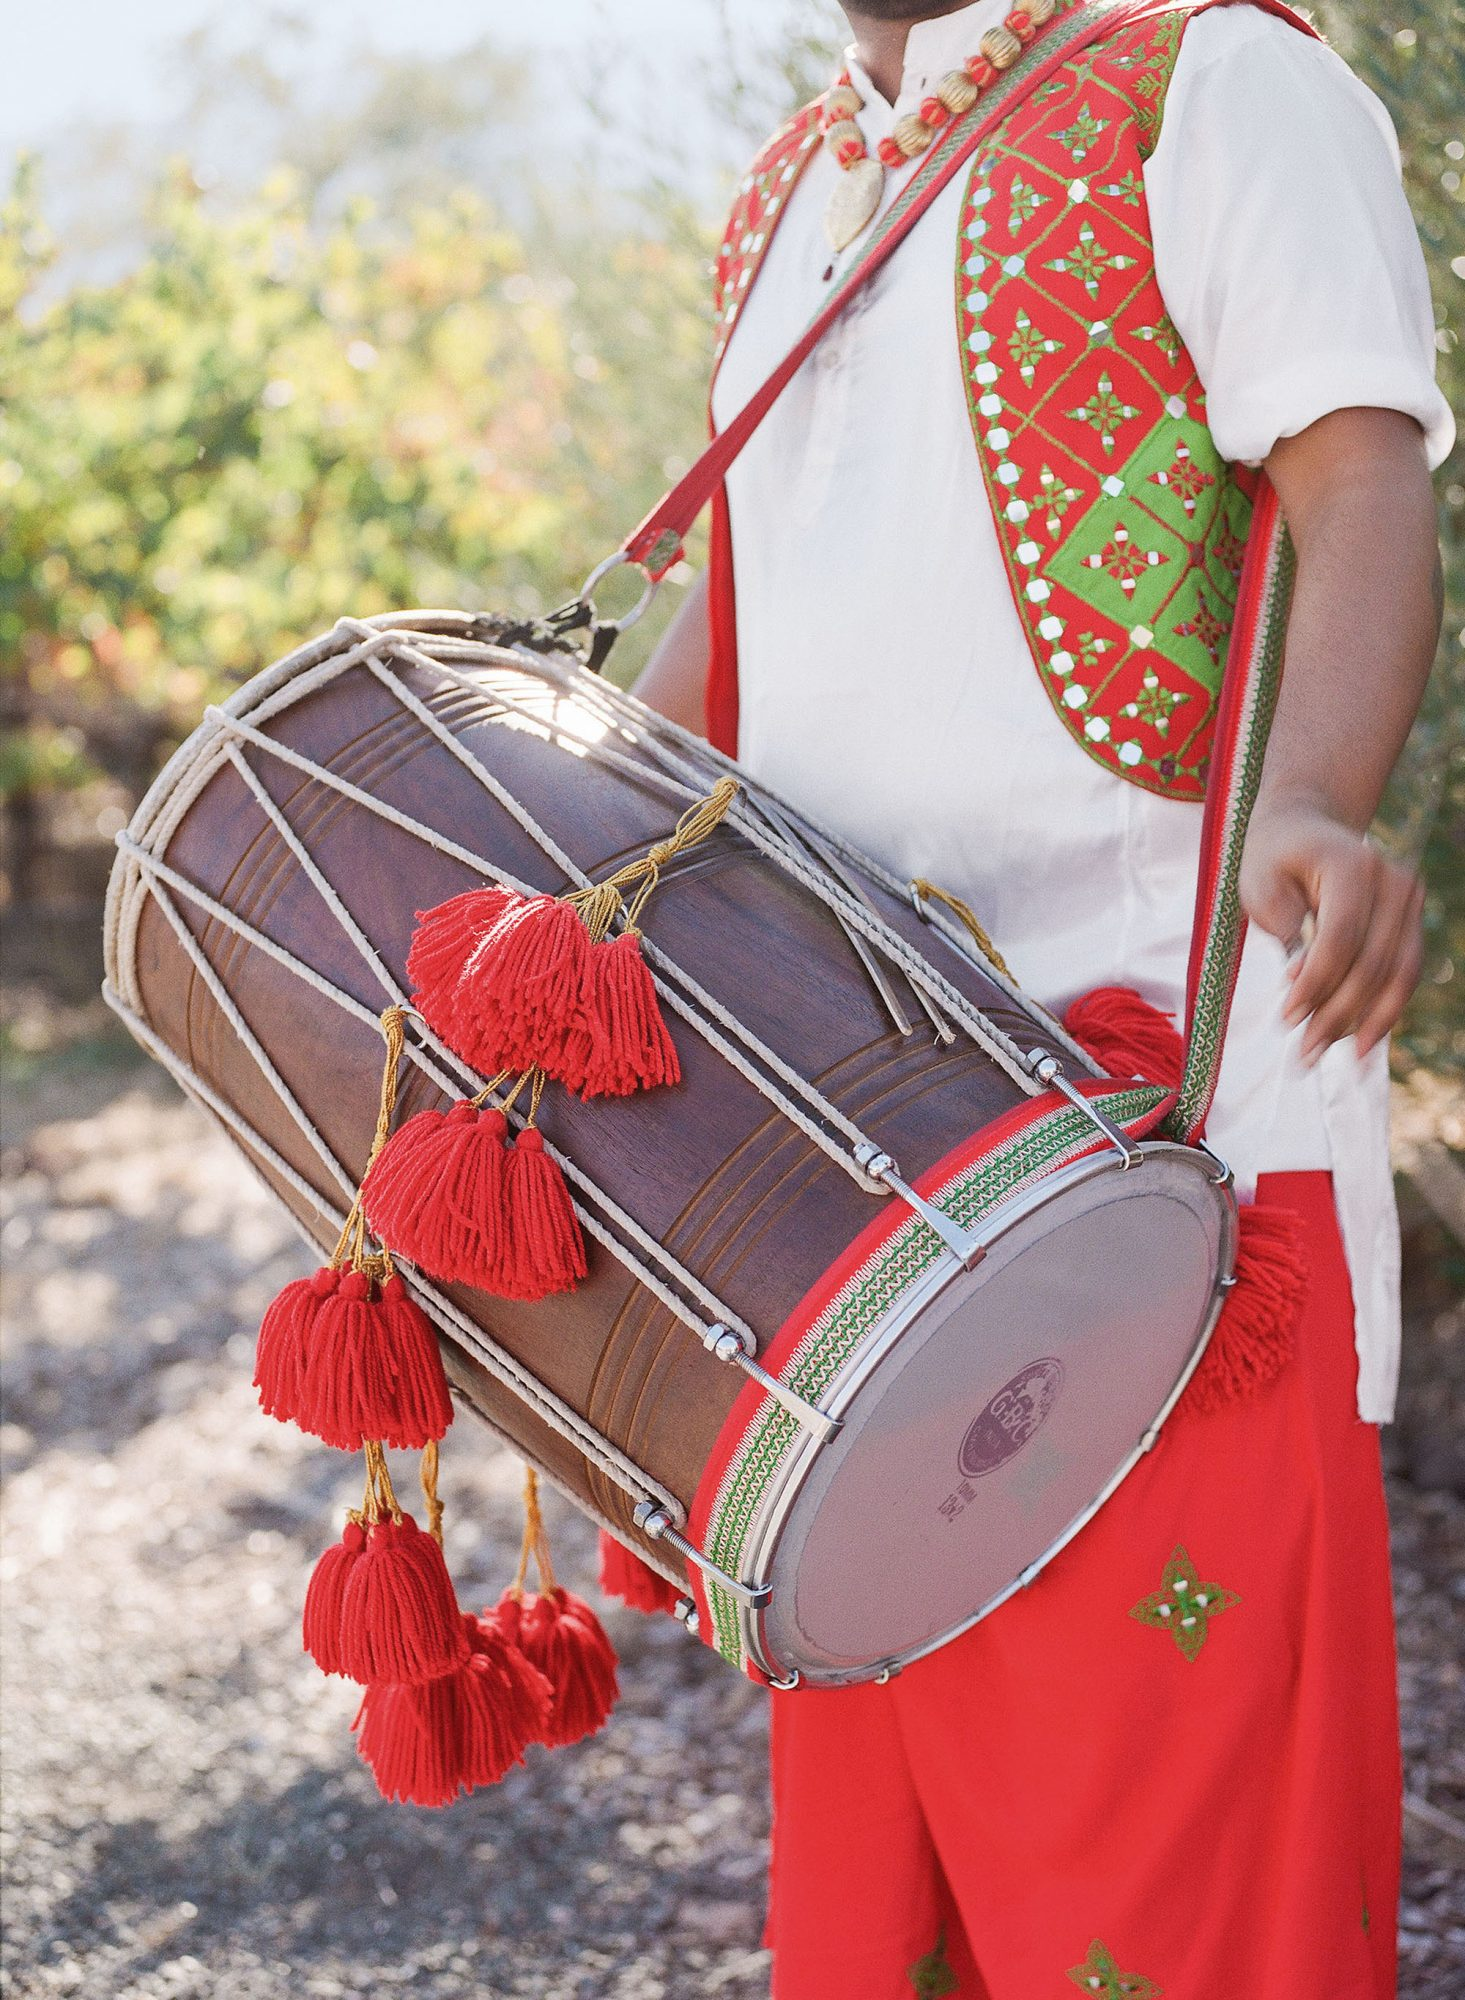 jenna alok wedding wine country california musician drum